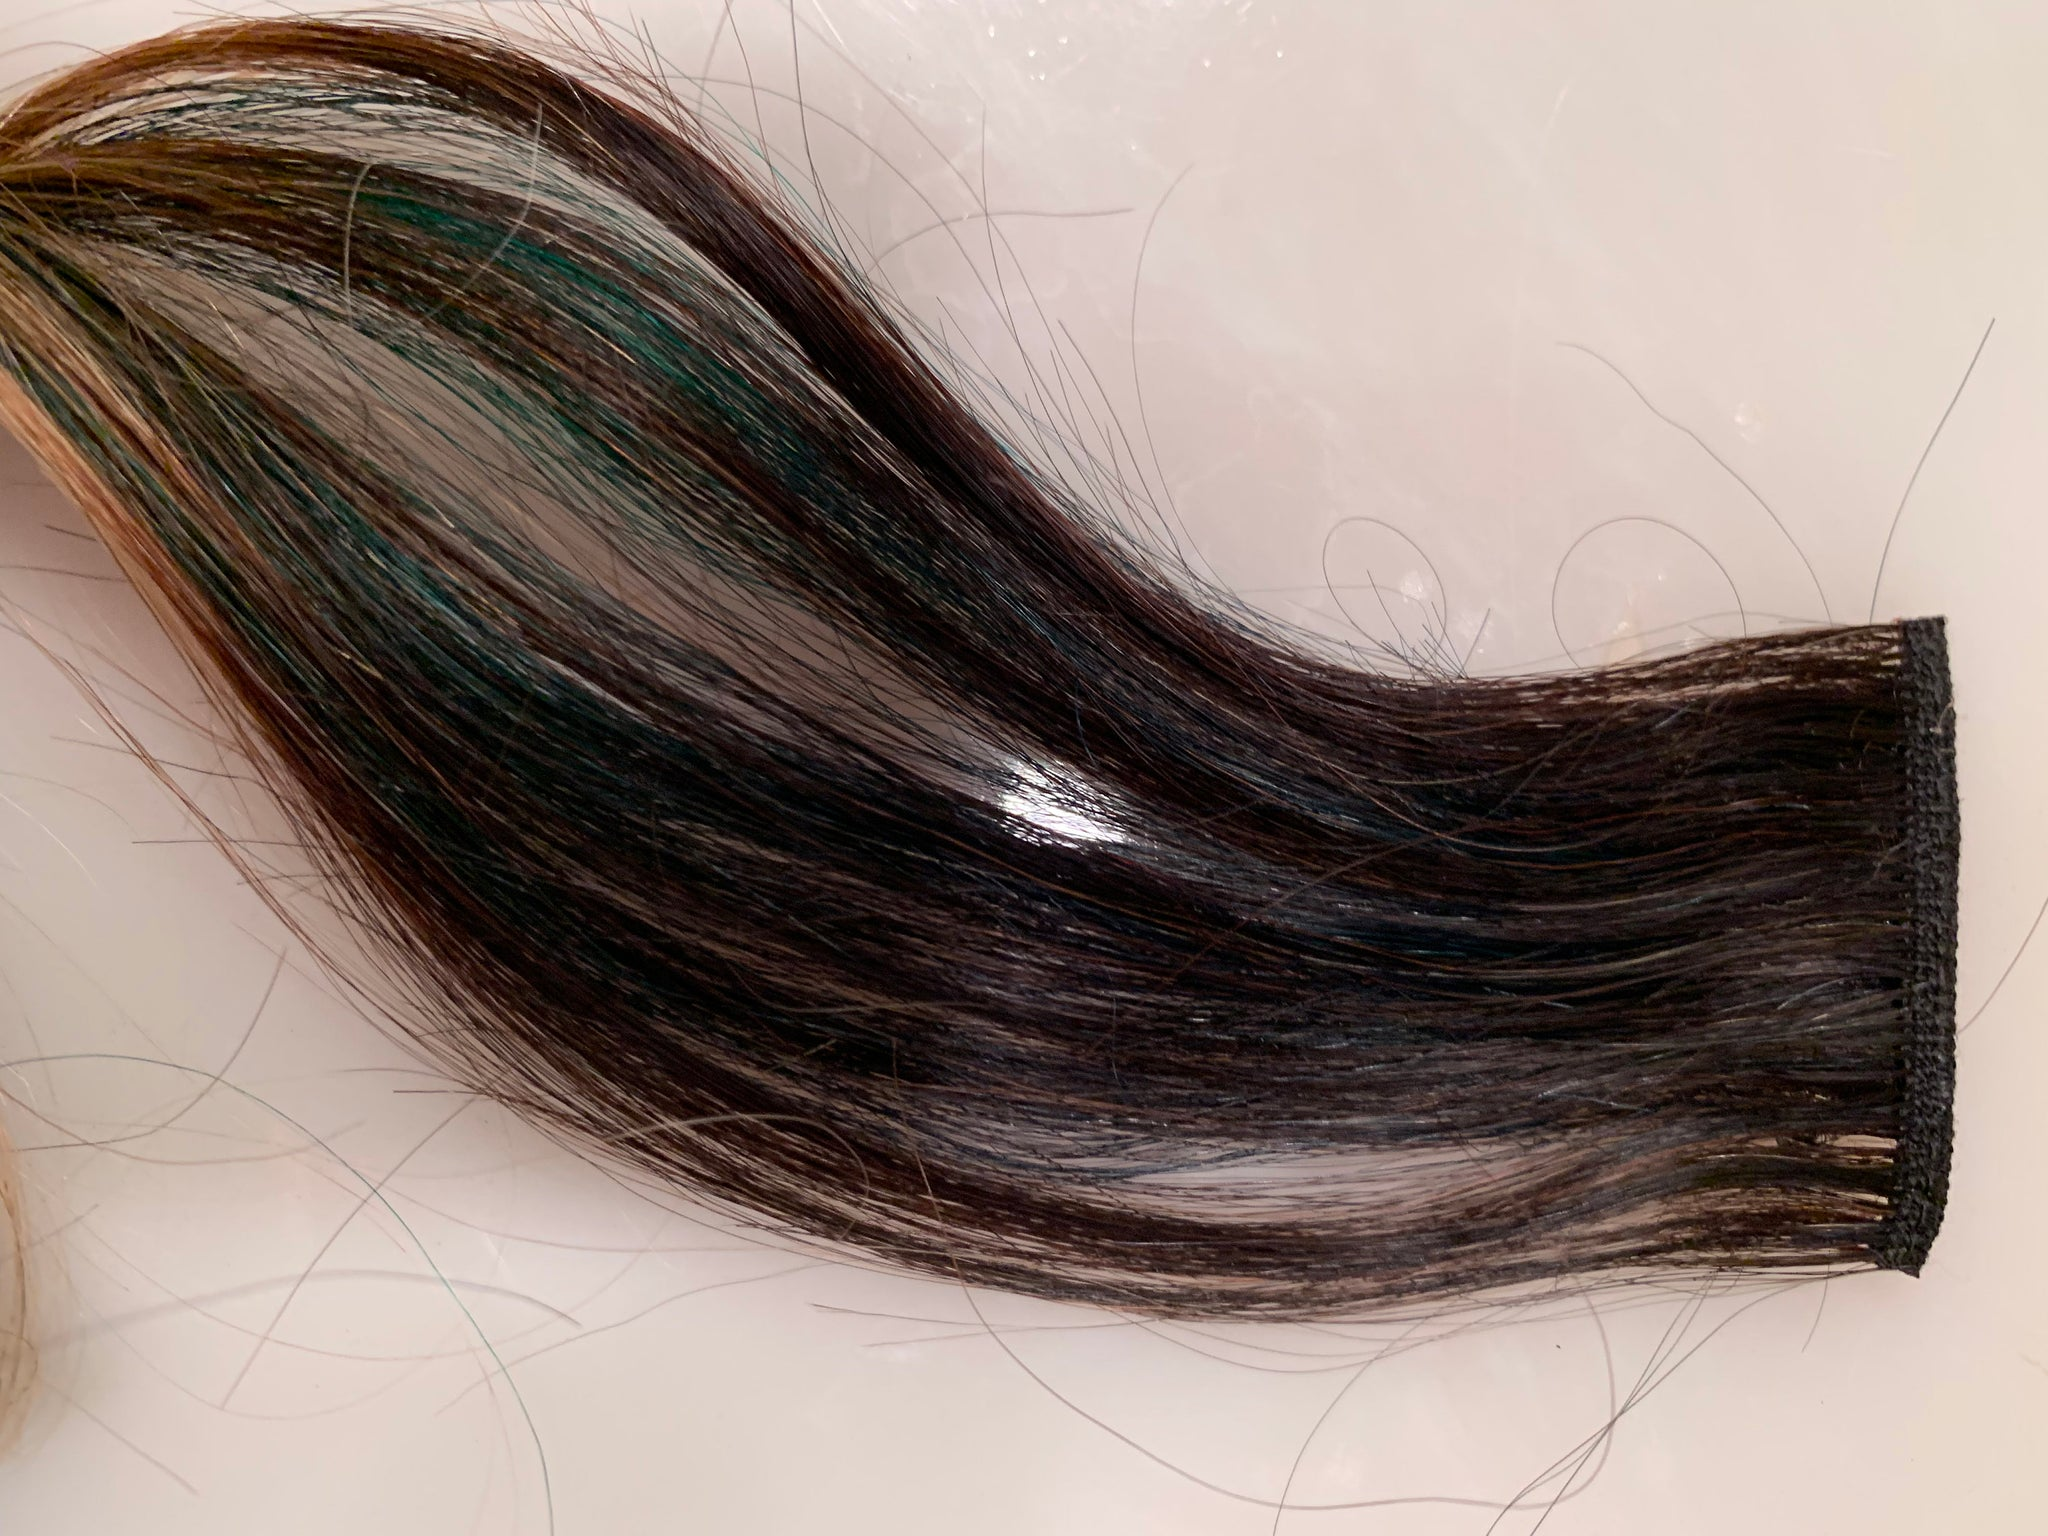 Black Blonde Green Blue Ombre 100% Human Hair Extensions Clip or Tape Streak 20-22 inches long